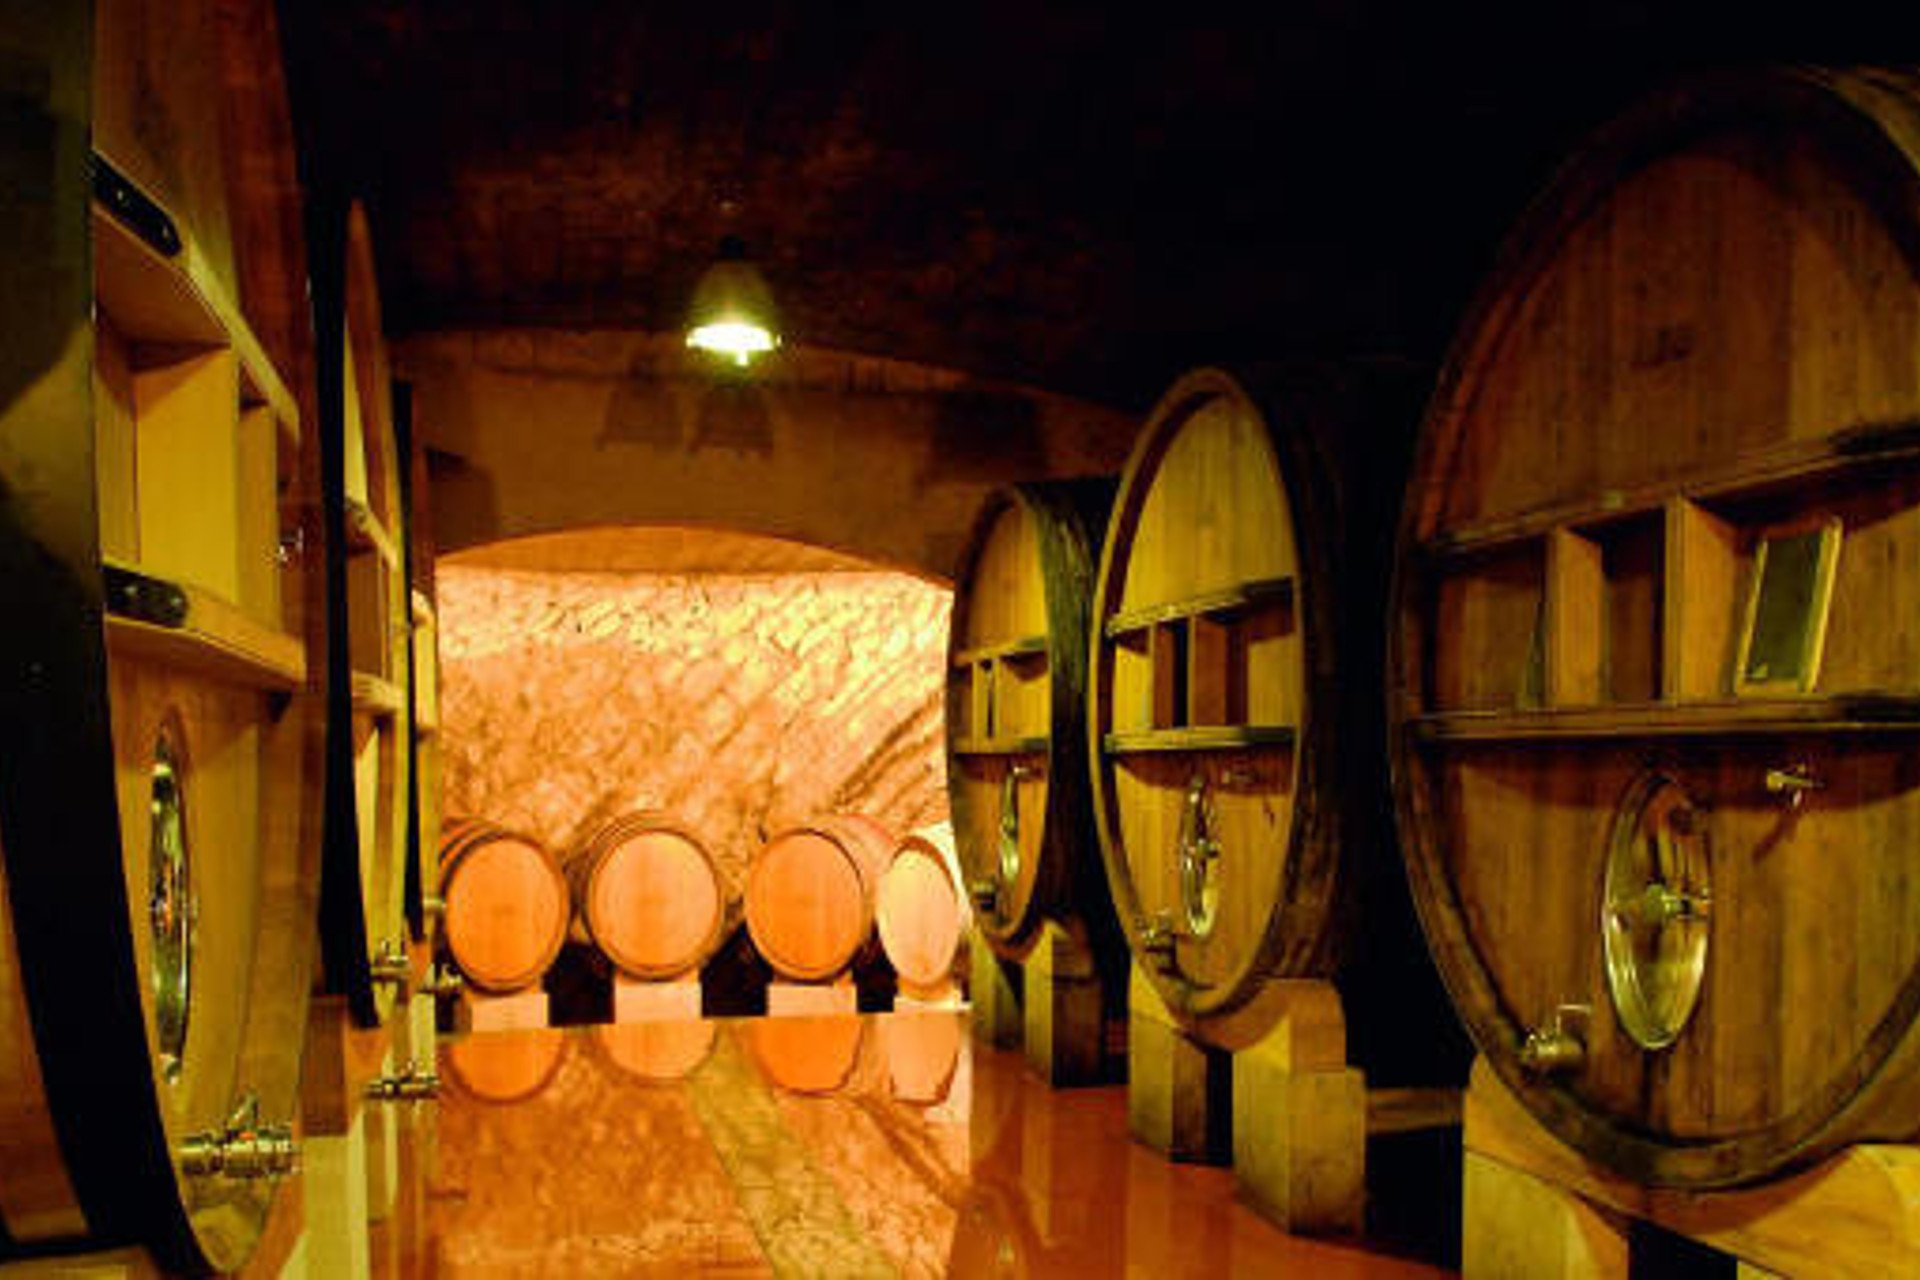 cellar-wine-Saint Remy de Provence-Alpilles-Provence-France